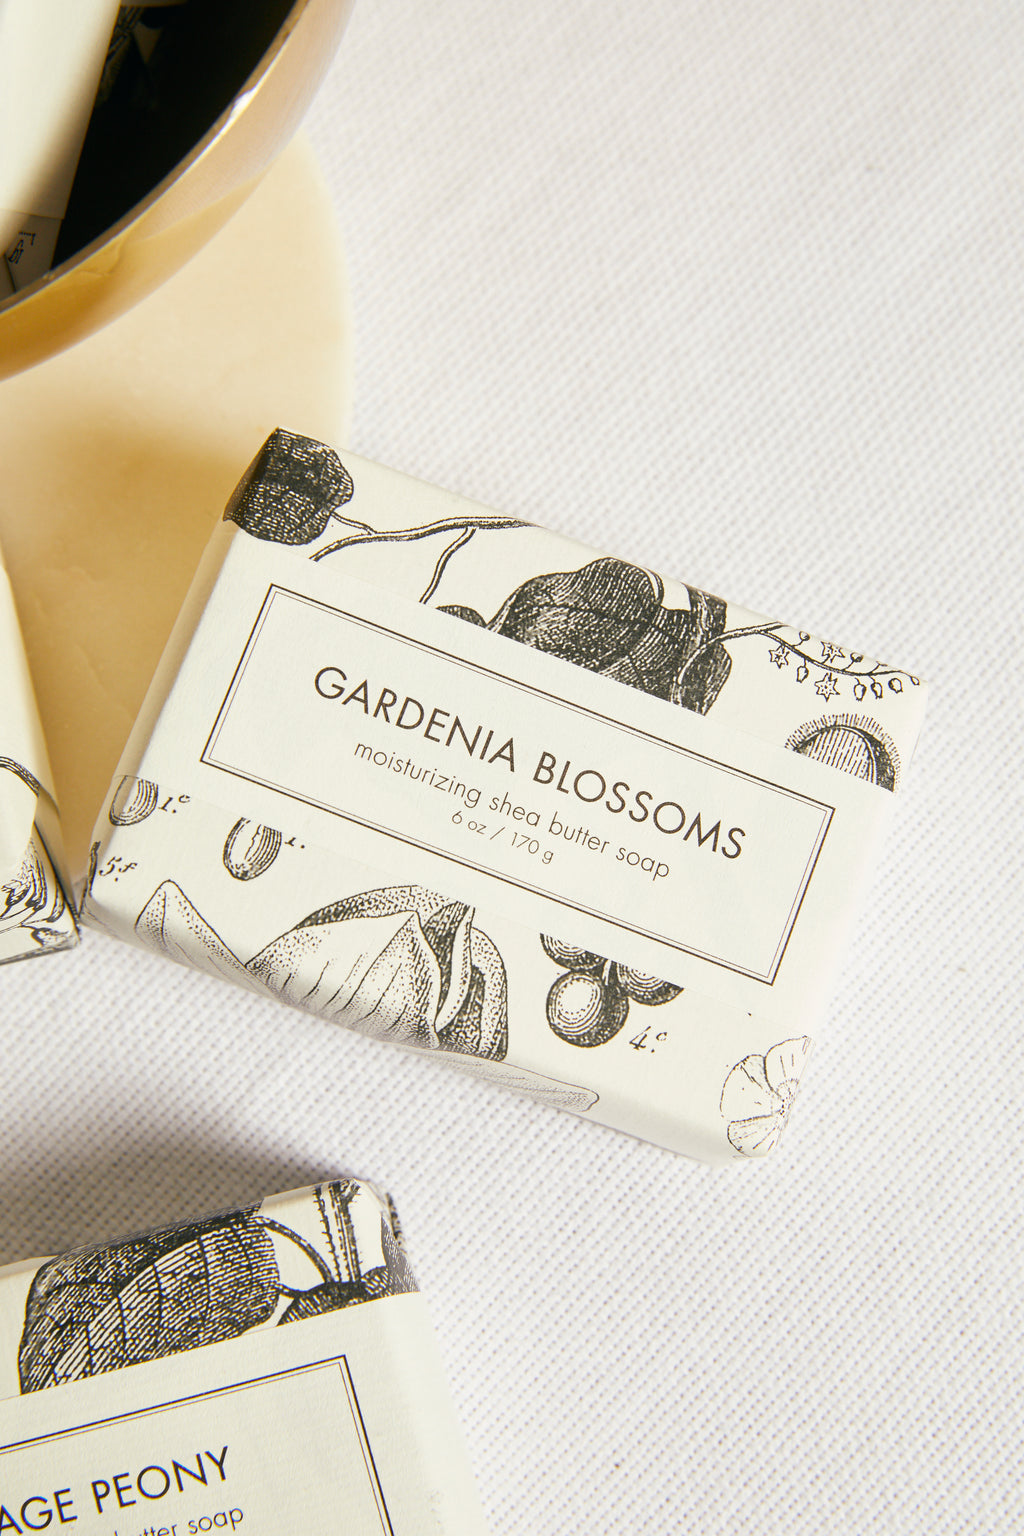 Gardenia Blossoms Shea Butter Bar Soap - picnic-sf